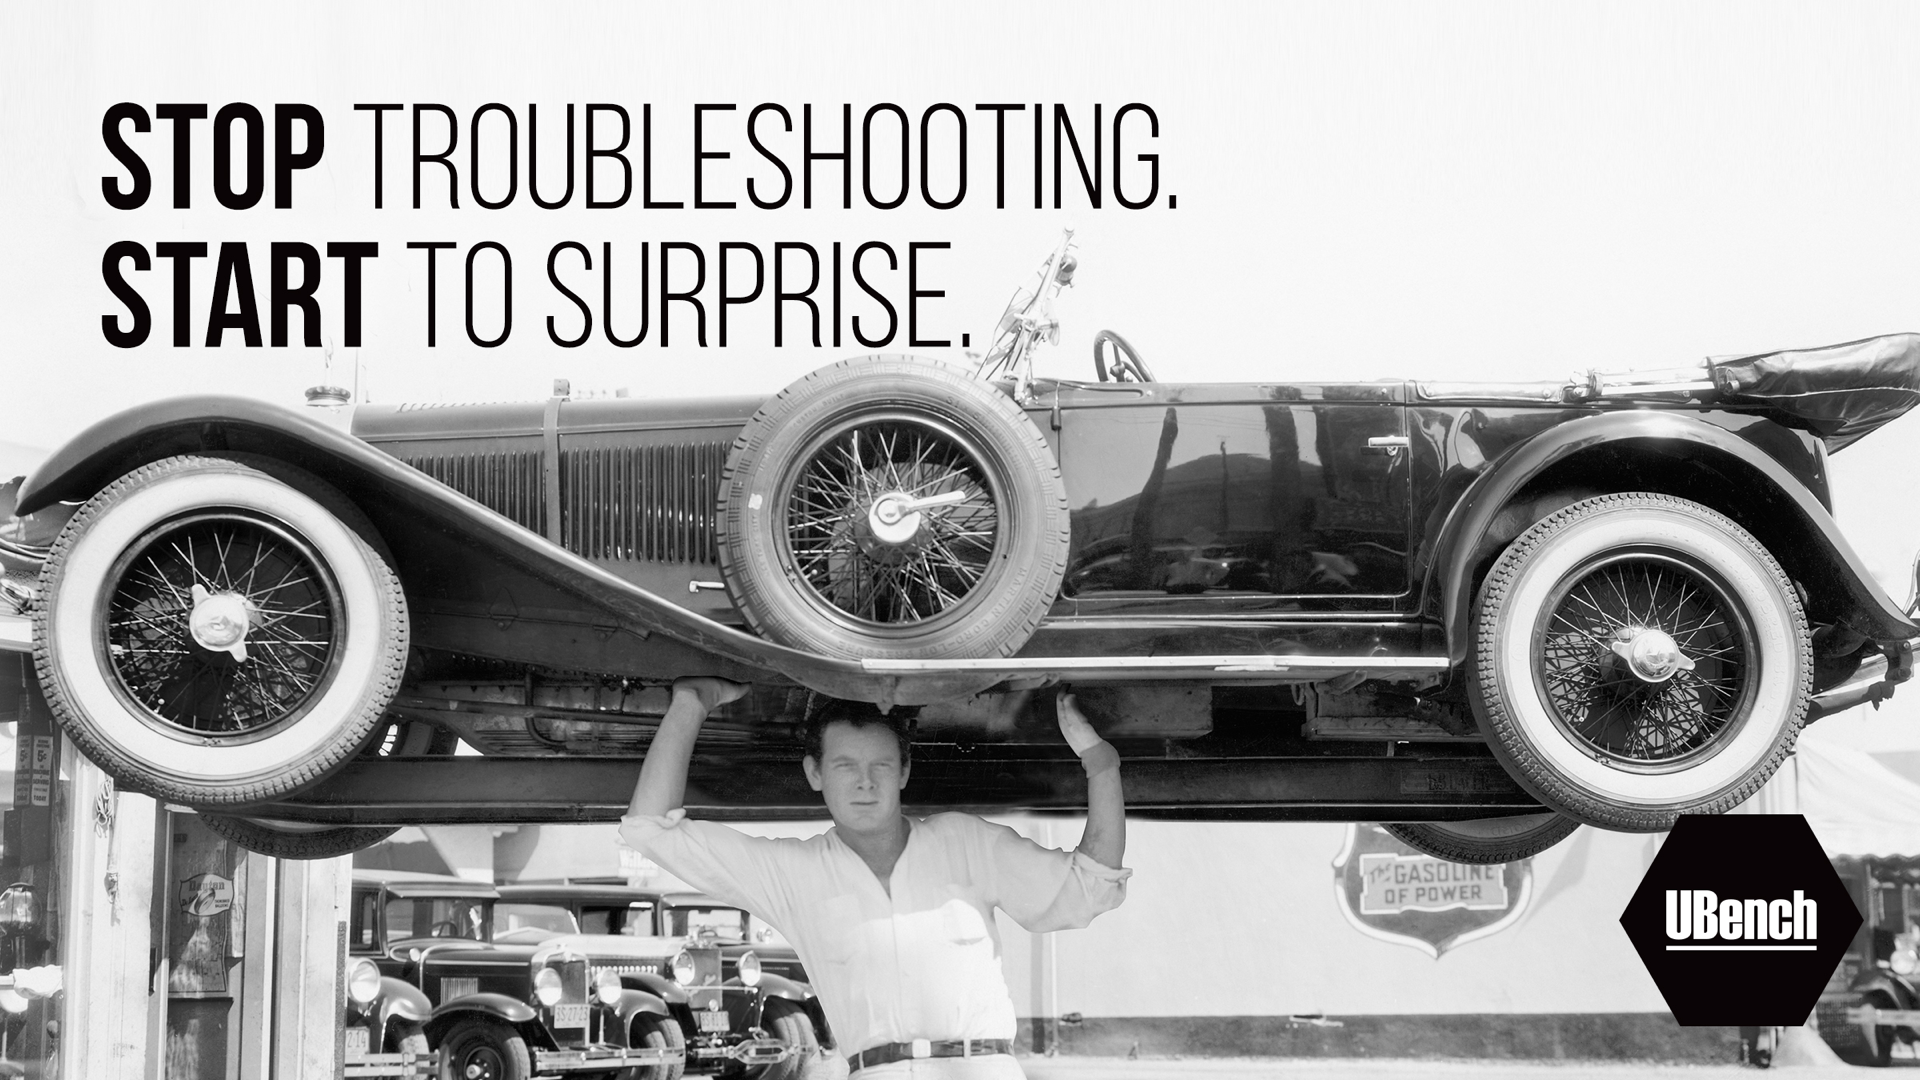 Stop troubleshooting. Start to surprise.